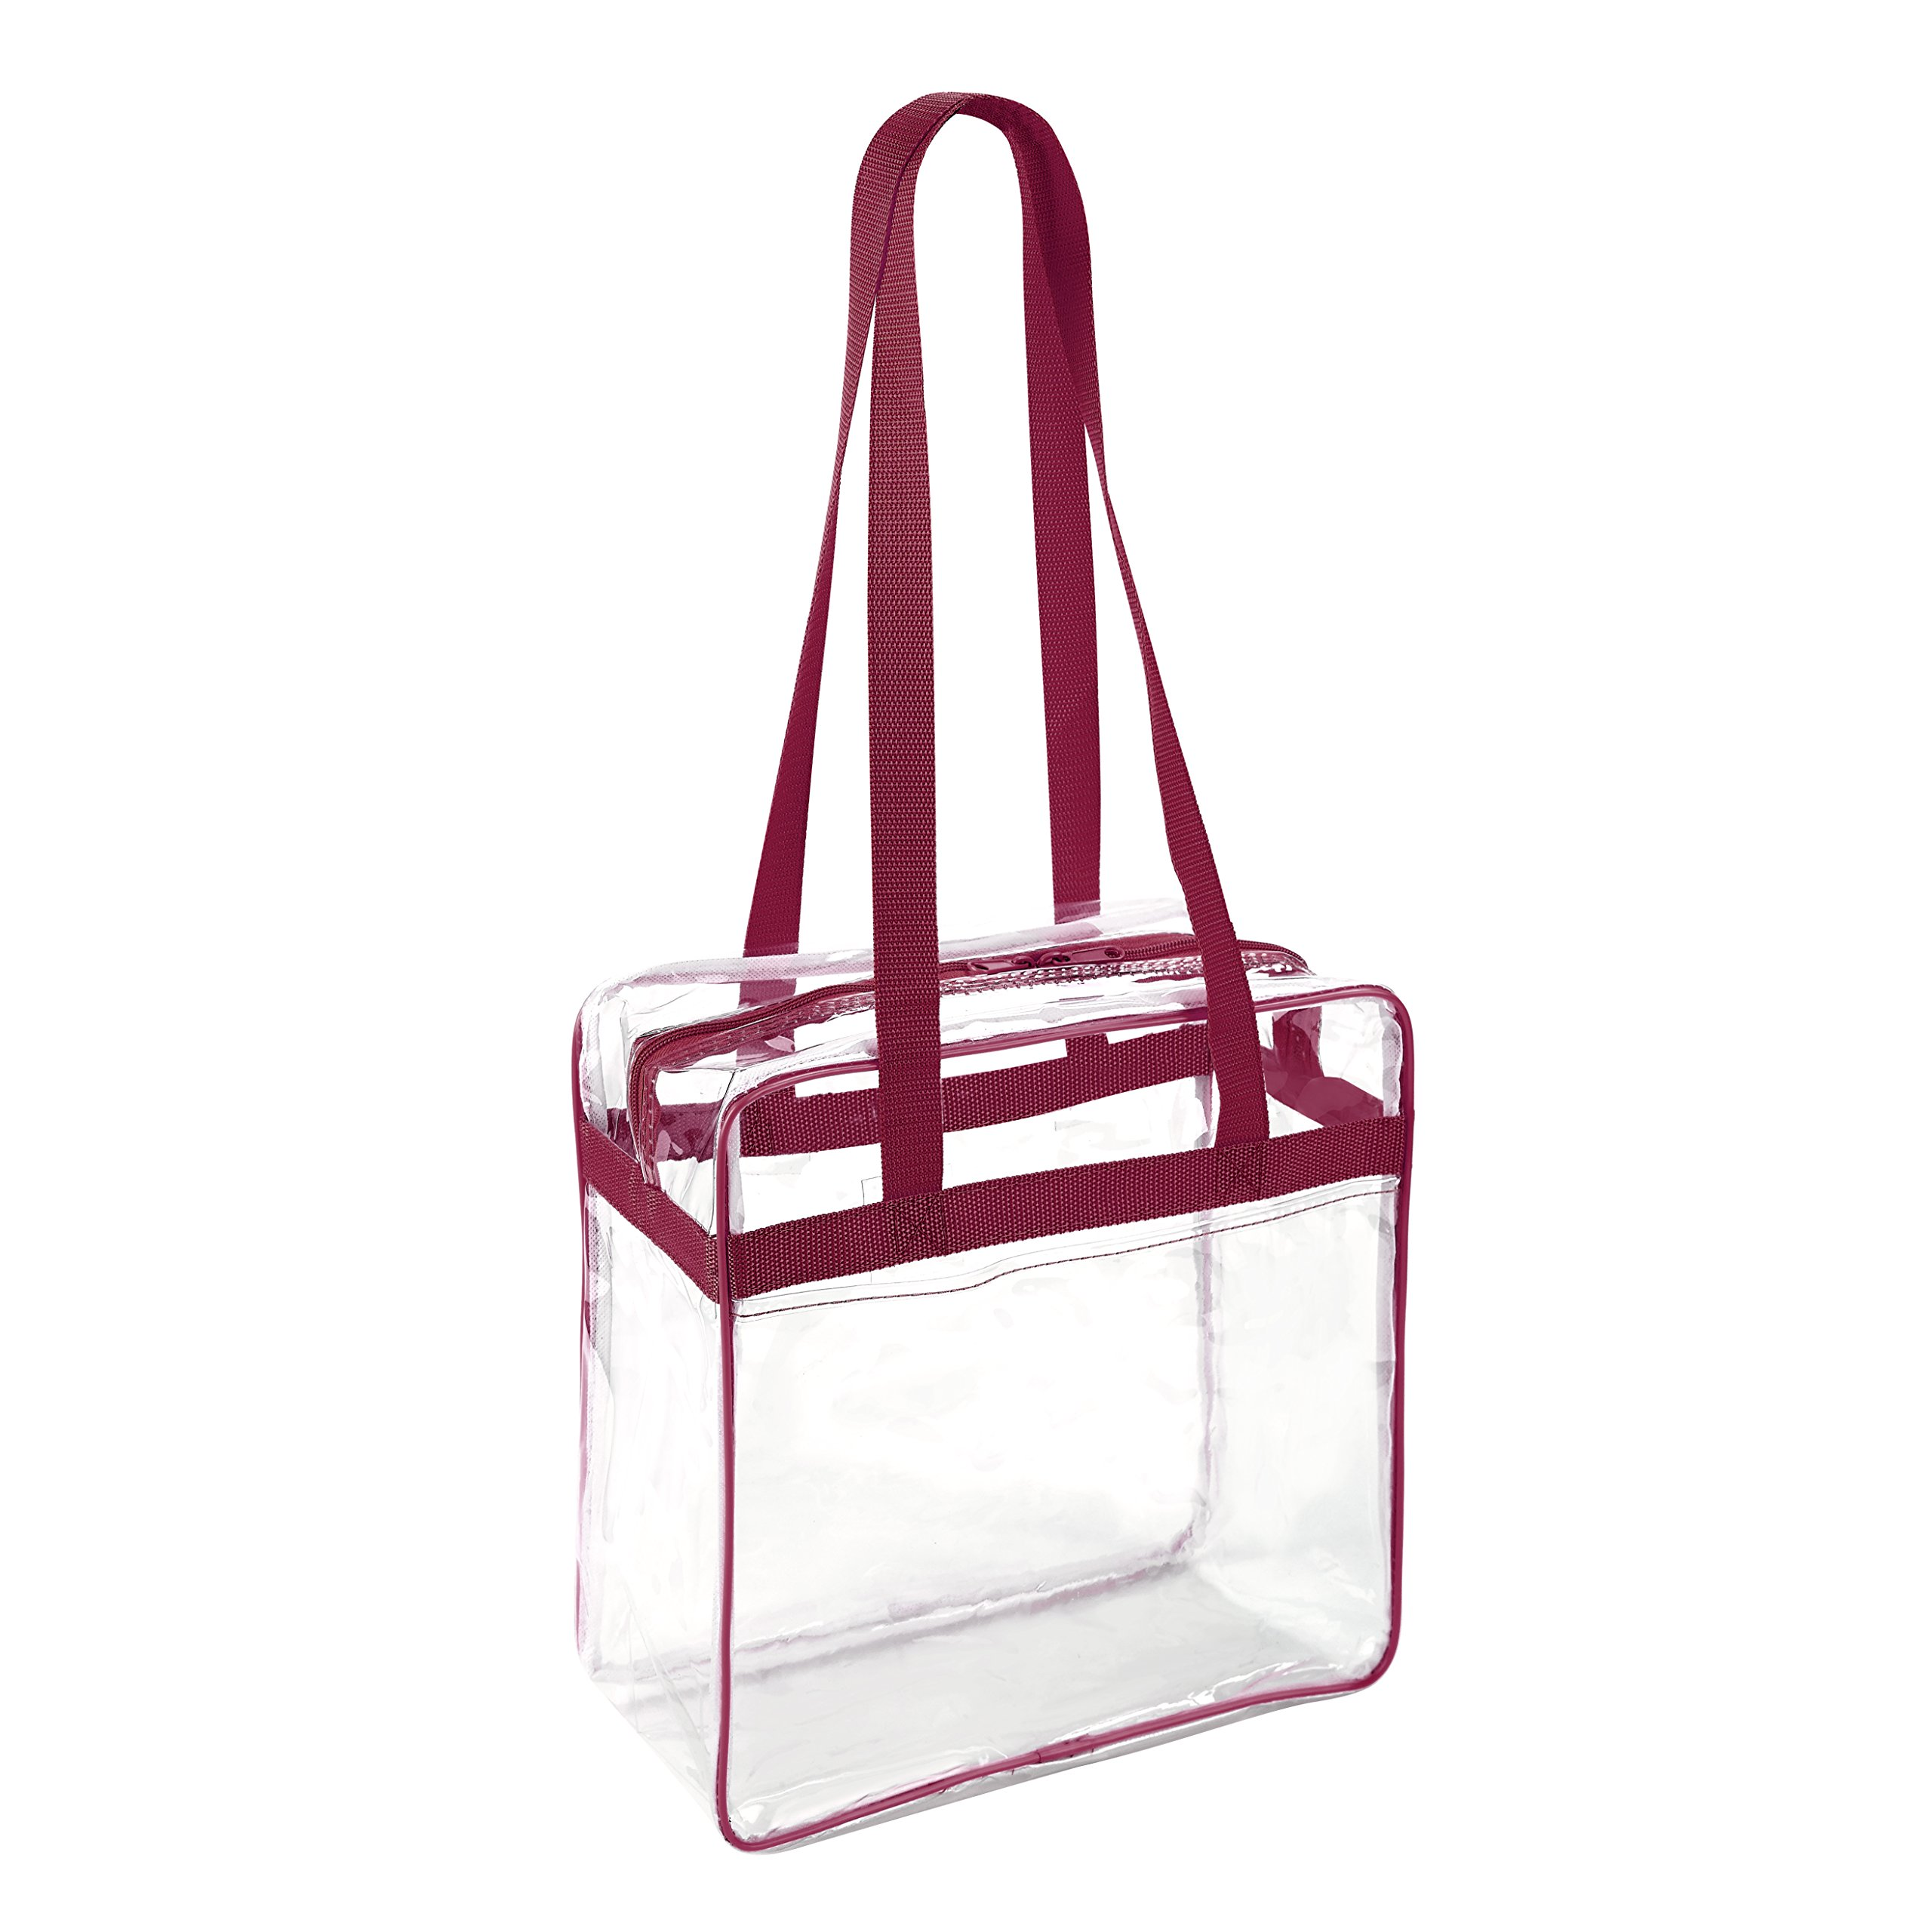 Clear 12 x 12 x 6 NFL Stadium Approved Tote Bag with 35'' Handles and Side Pocket - Dark Red Trim